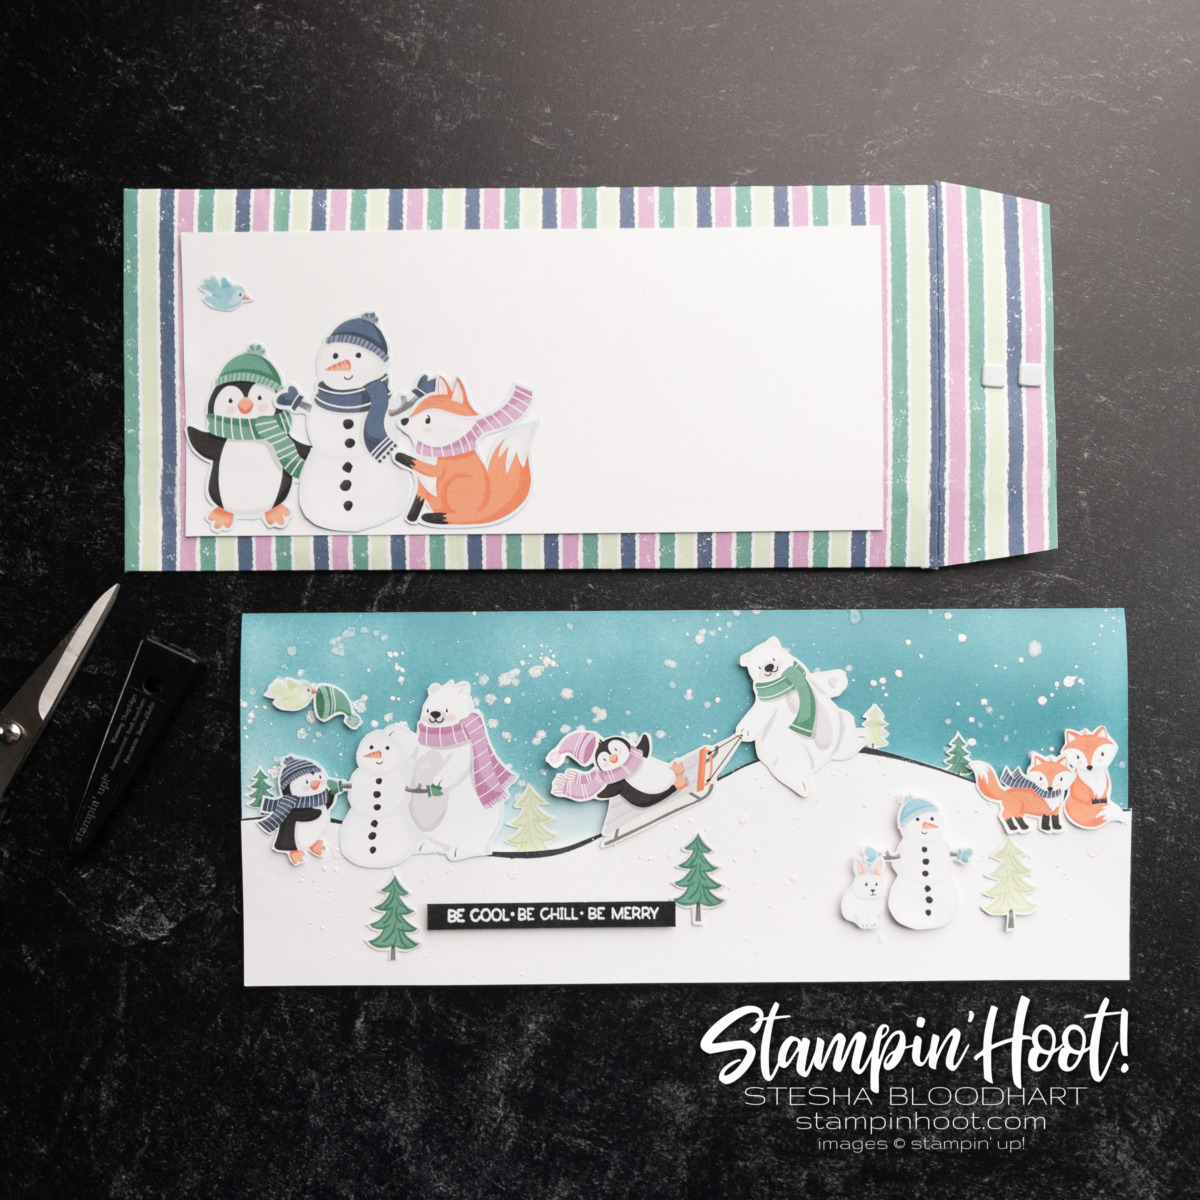 #tgifc326 Decorated Envelopes Challenge Card Slimline Card and Envelope by Stesha Bloodhart, Stampin' Hoot!